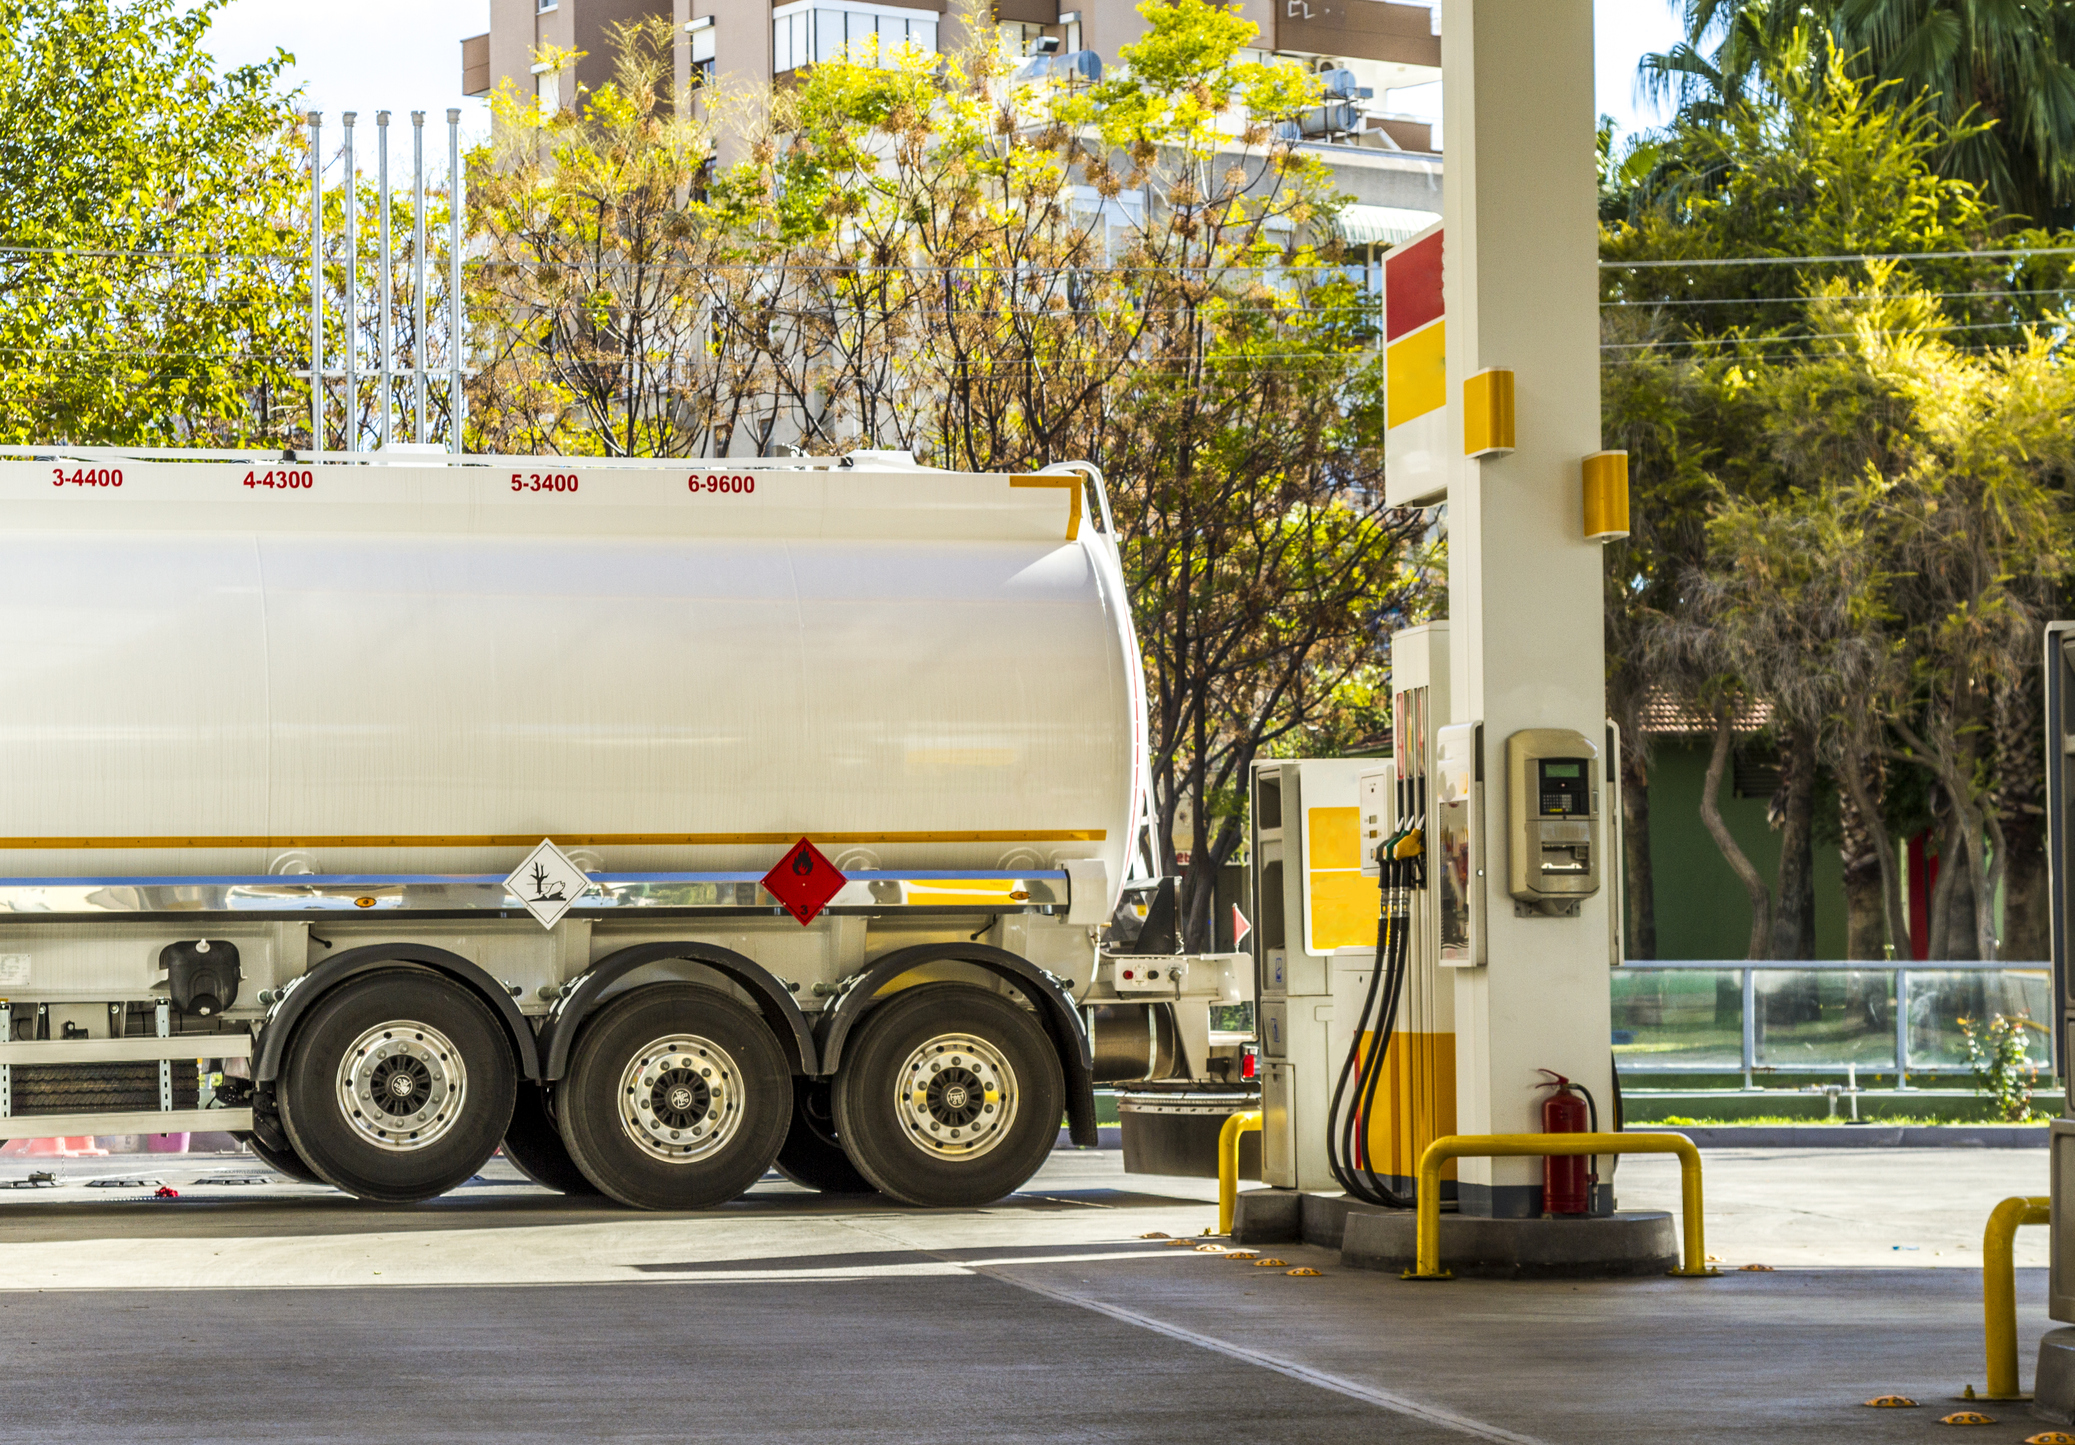 Using Fuel Management Systems to Stay Ahead of Gas Trends